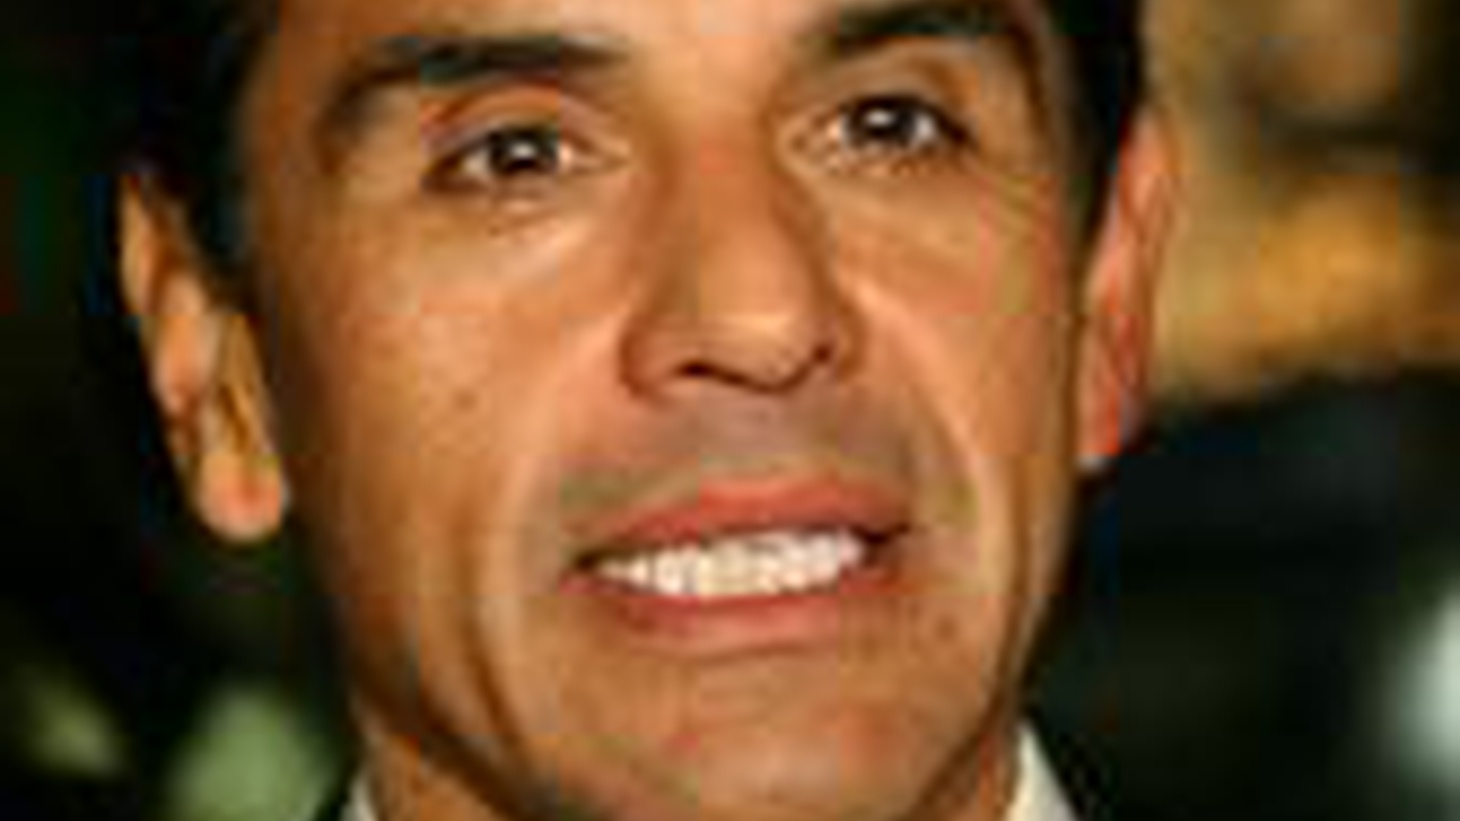 Do the news media care more about Mayor Villaraigosa's affair than the voters do? On Reporter's Notebook, is it time to get rid of your lawn?